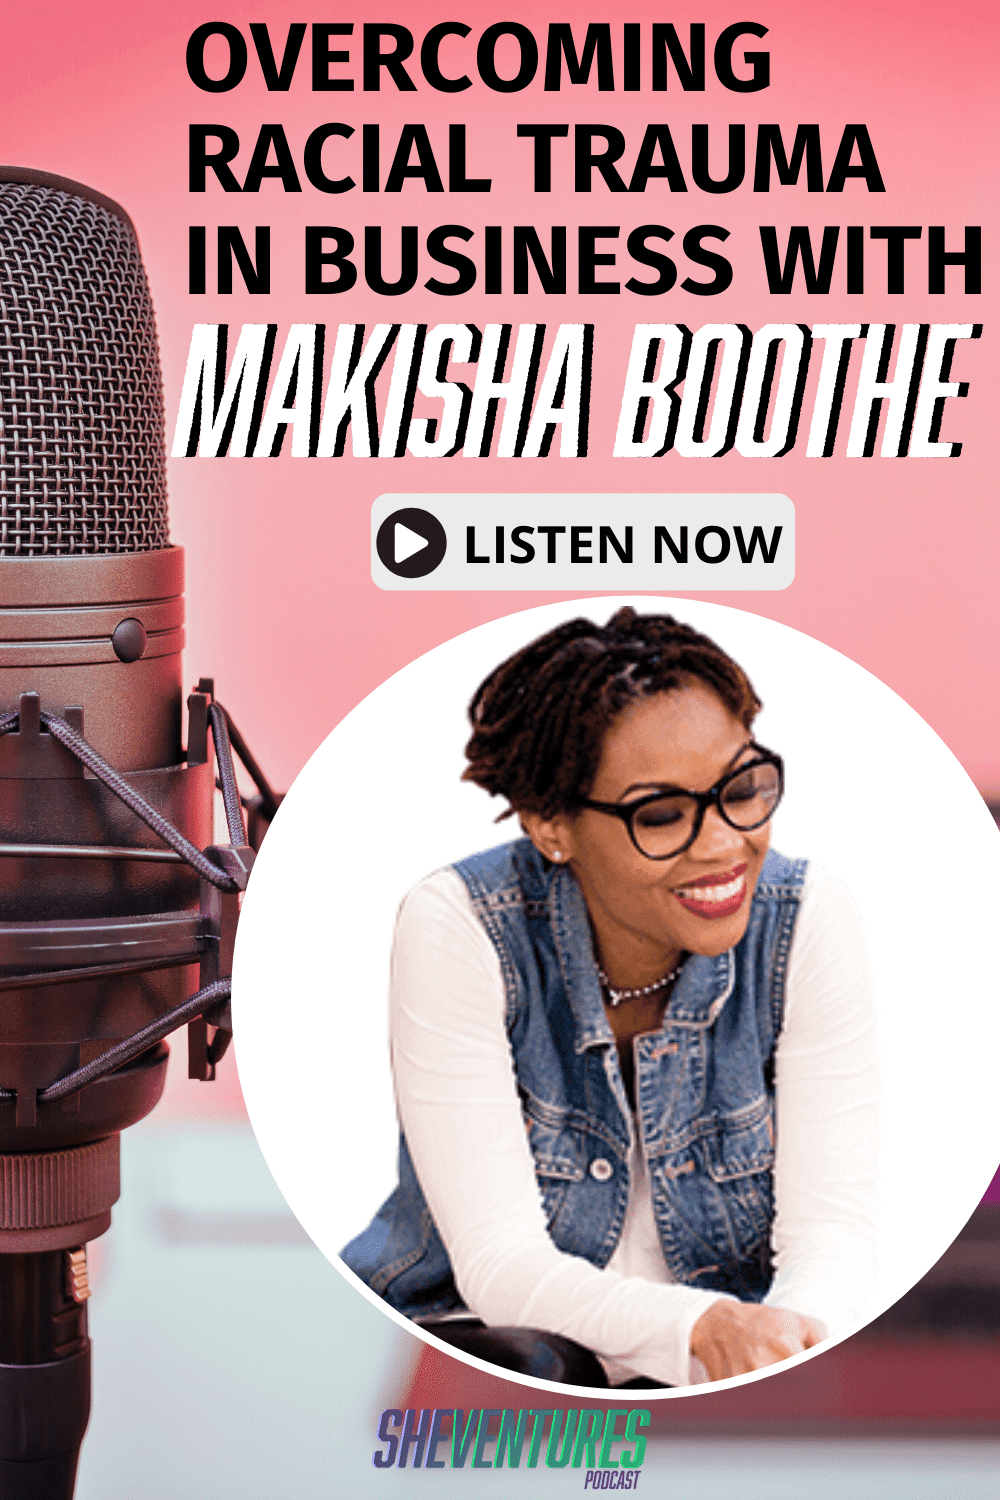 Listen: Overcoming Racial Trauma in Business With Makisha Boothe